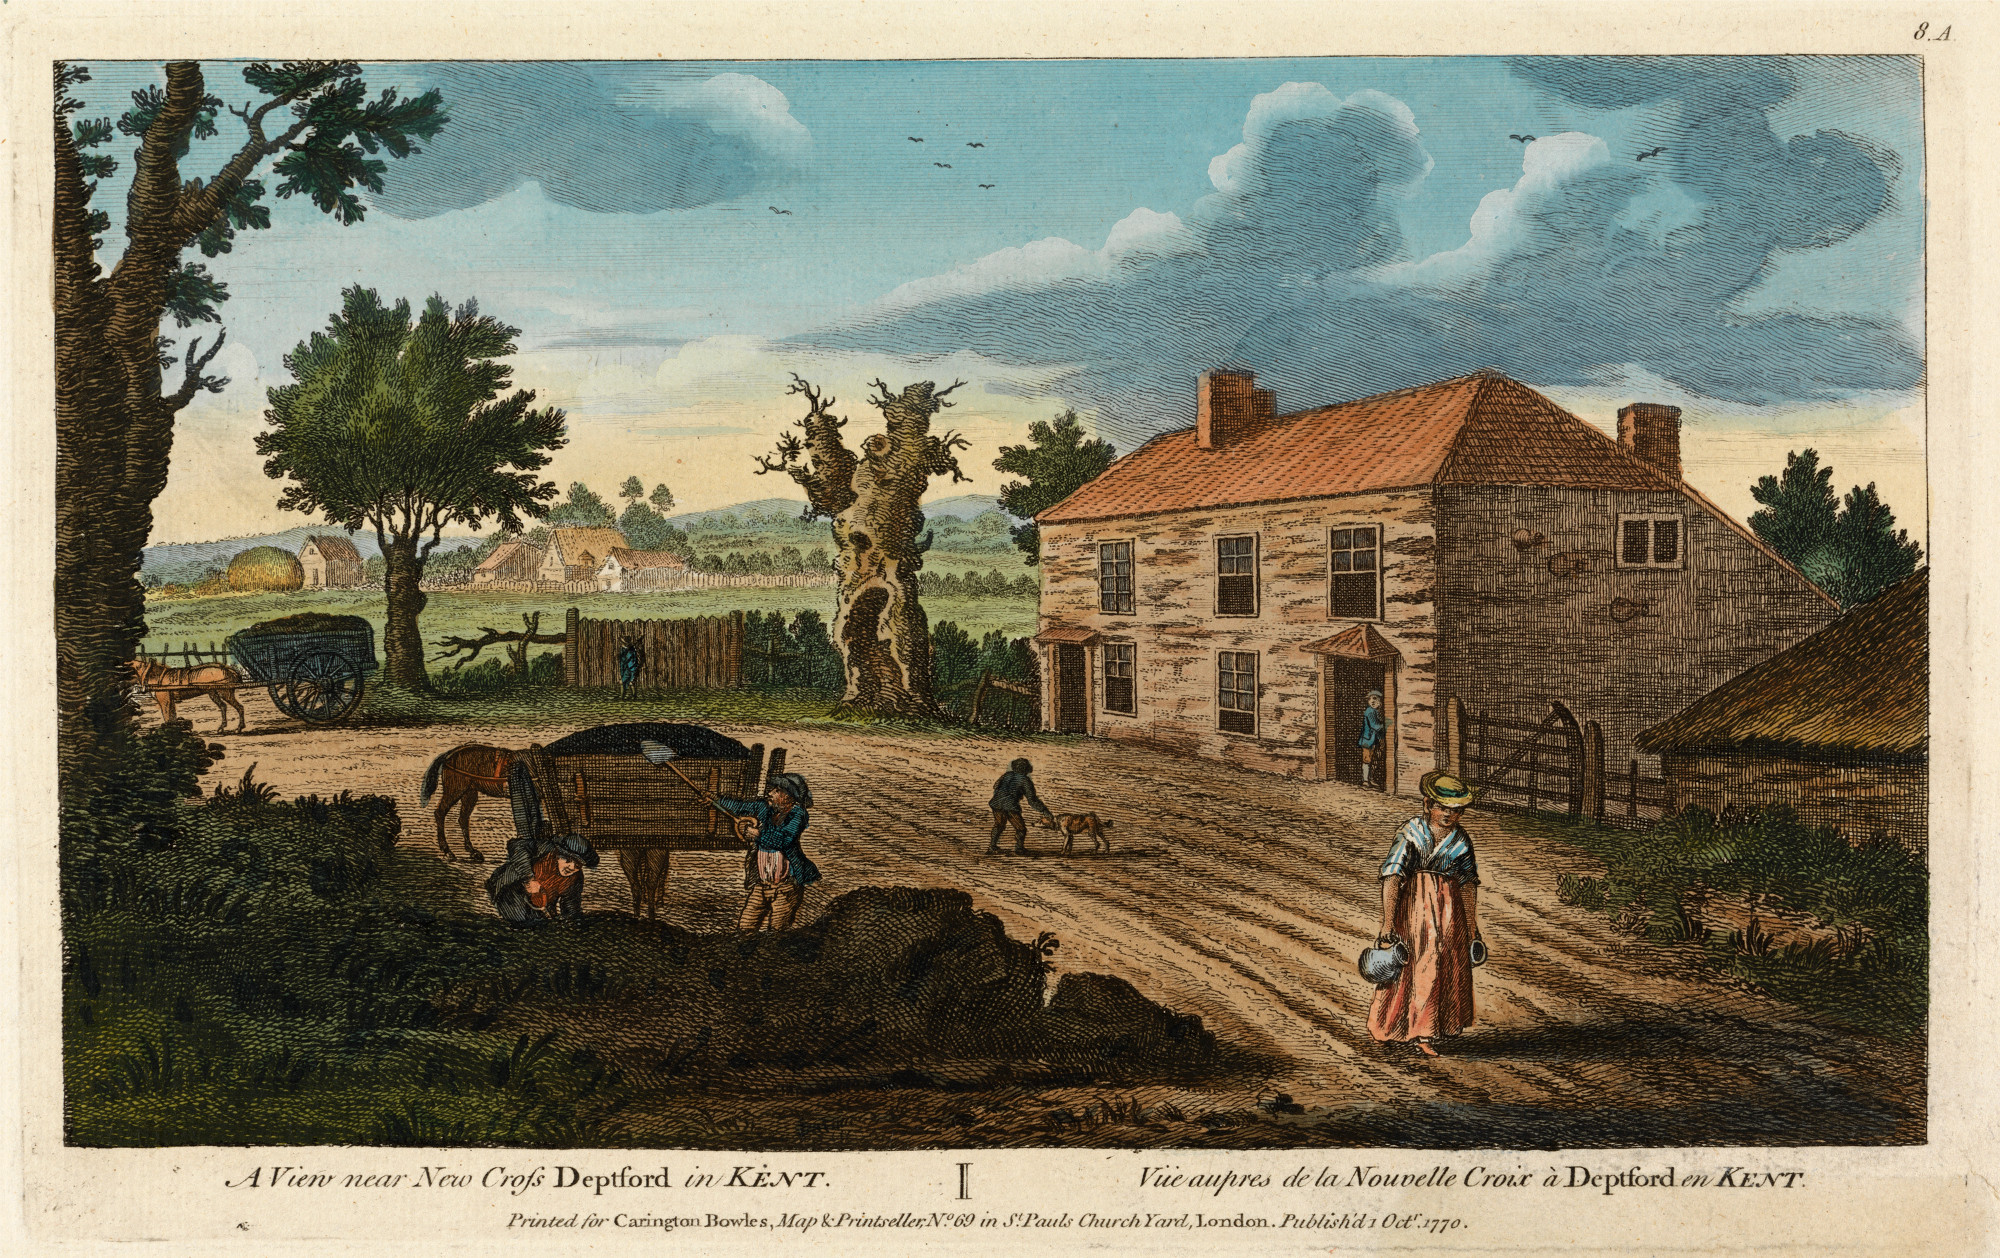 A View Near New Cross Deptford in Kent 1770 - The Townsends Blog